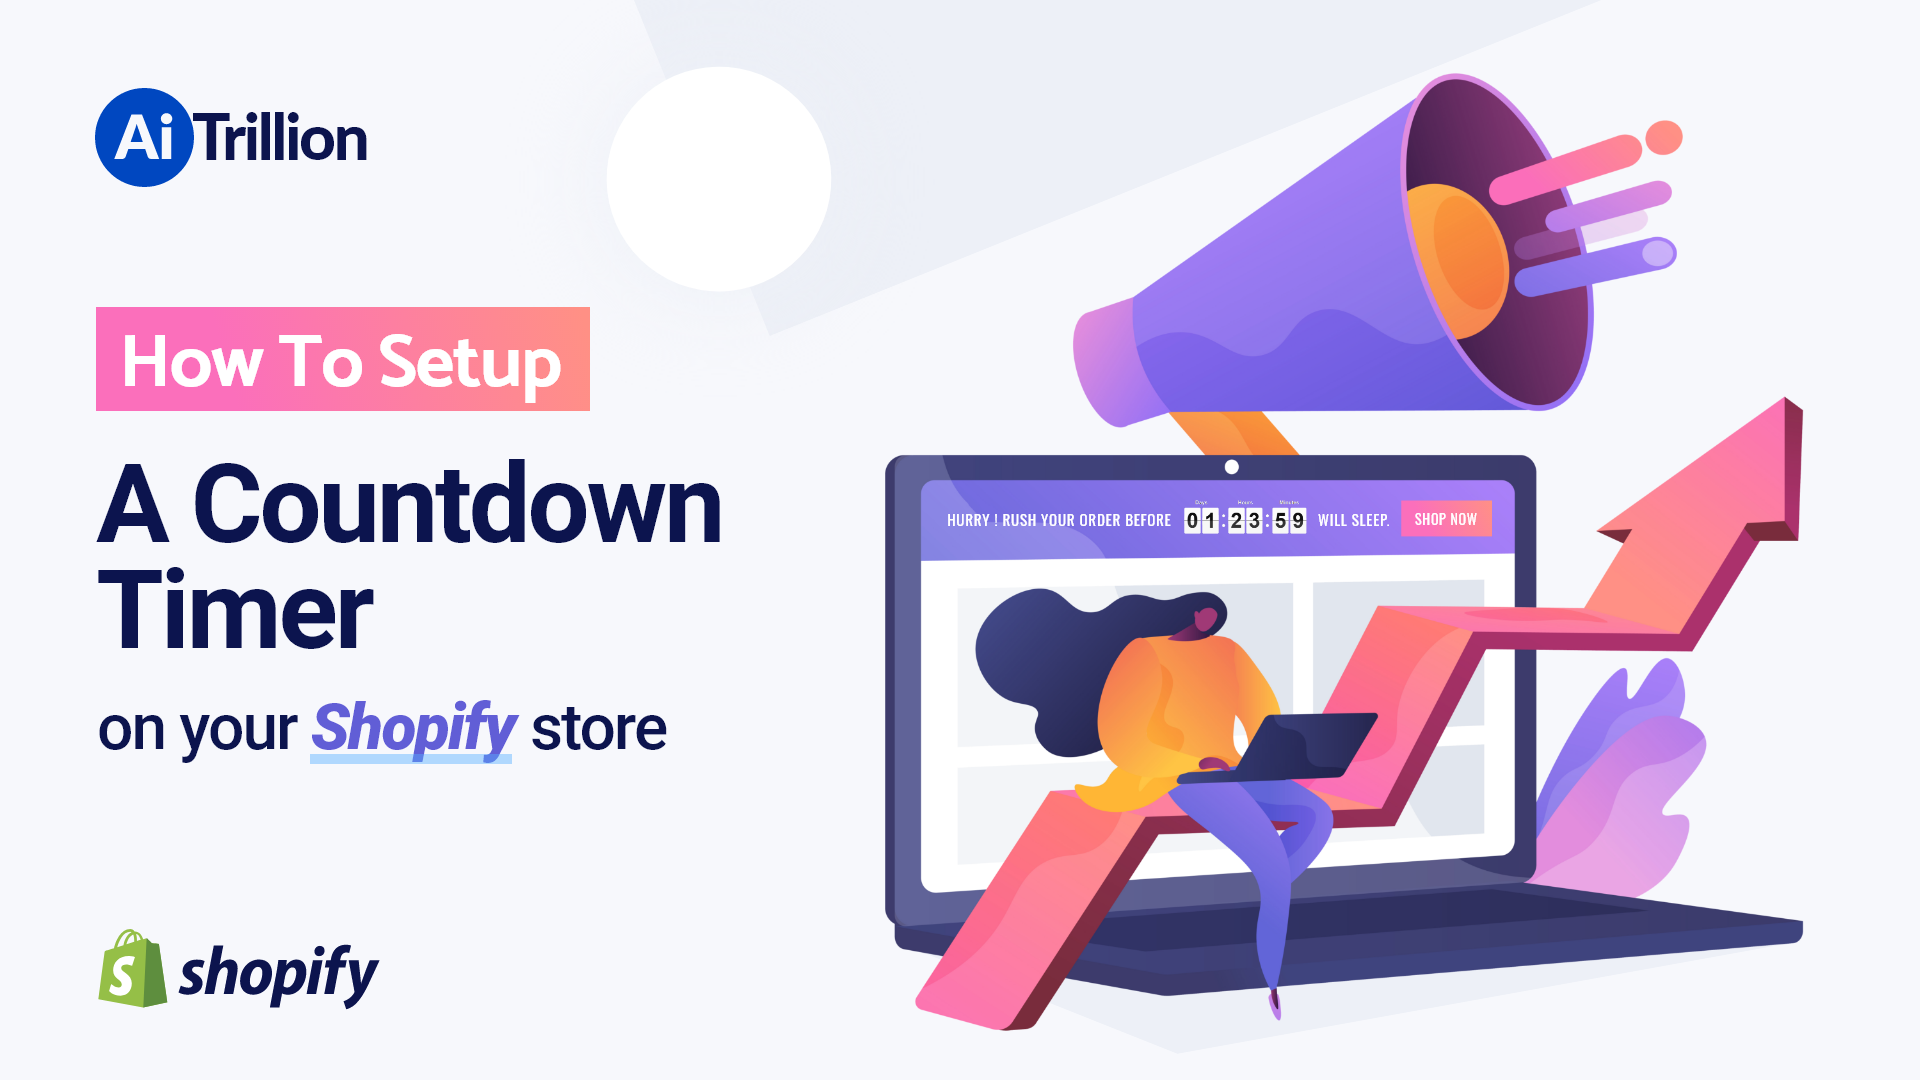 How To Setup A Countdown Timer on your Shopify